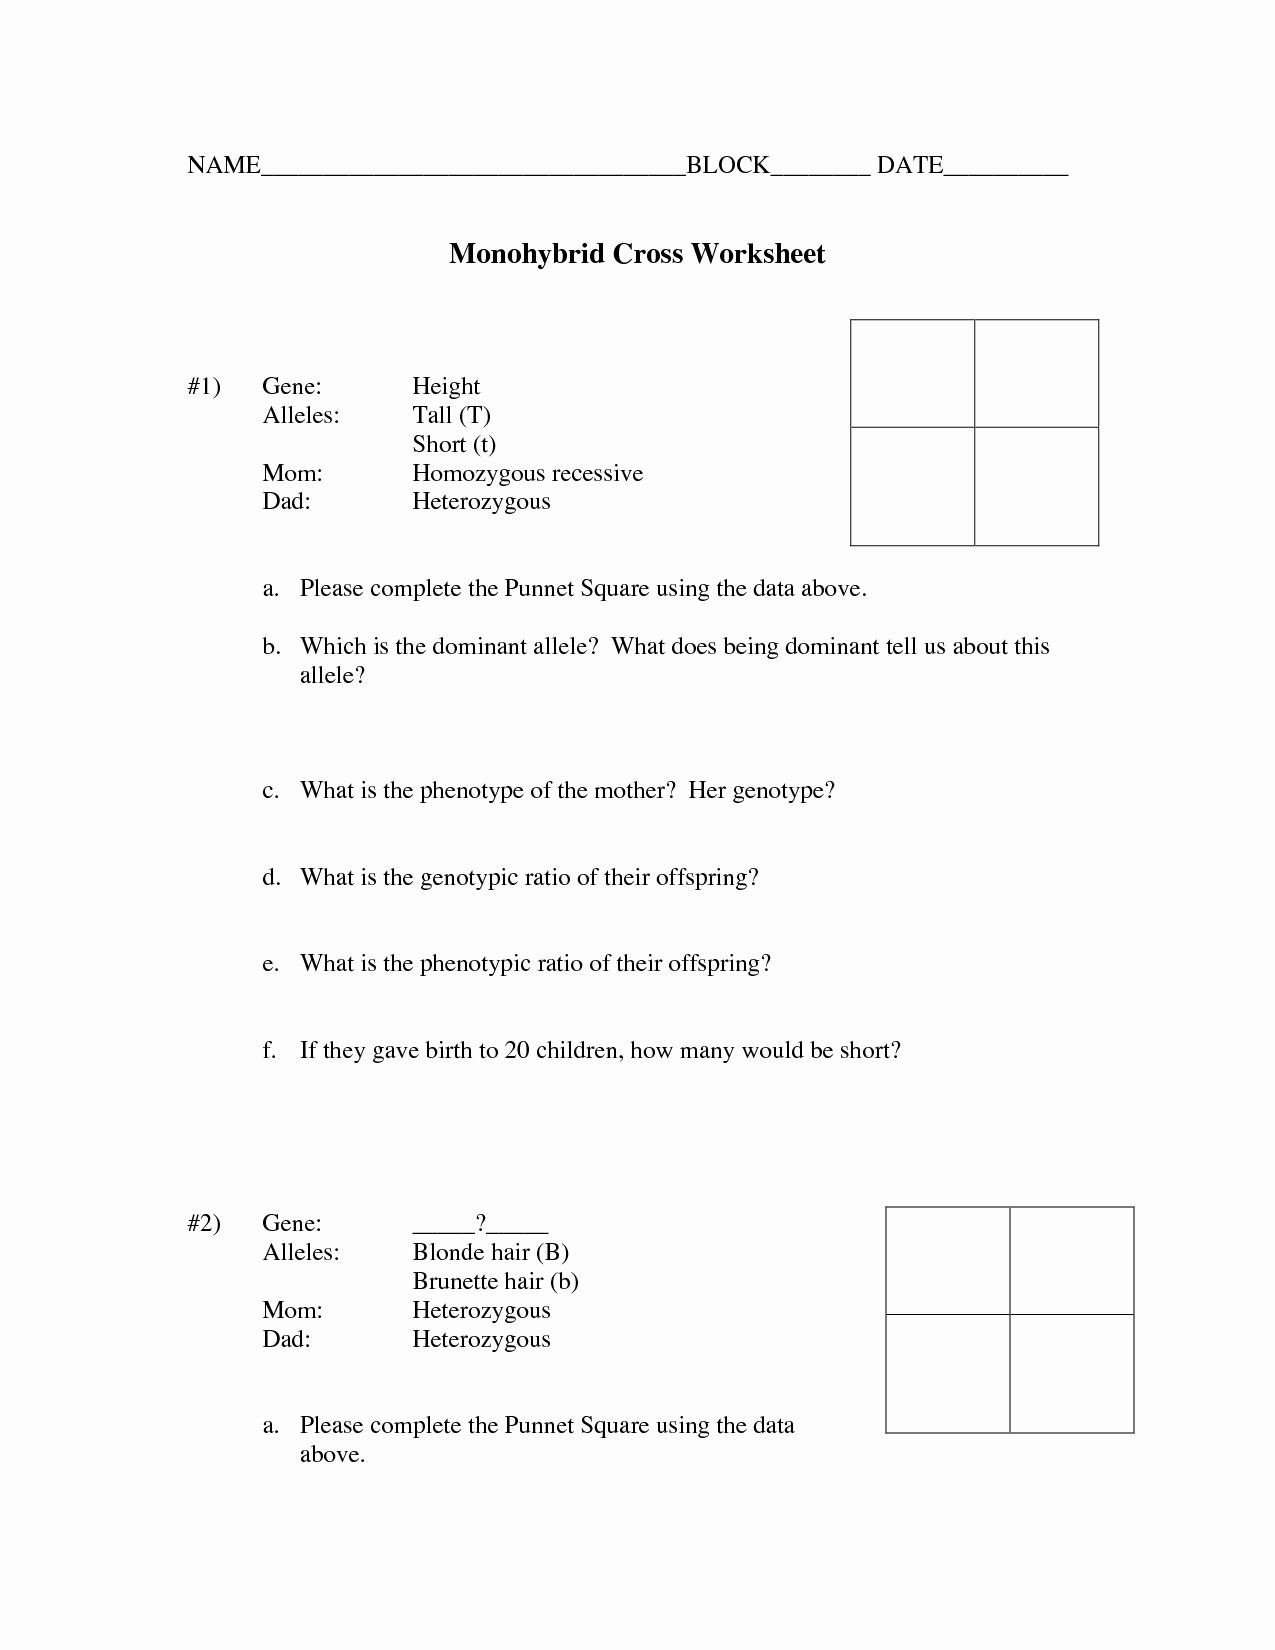 Dihybrid Cross Worksheet Answers New Punnett Square